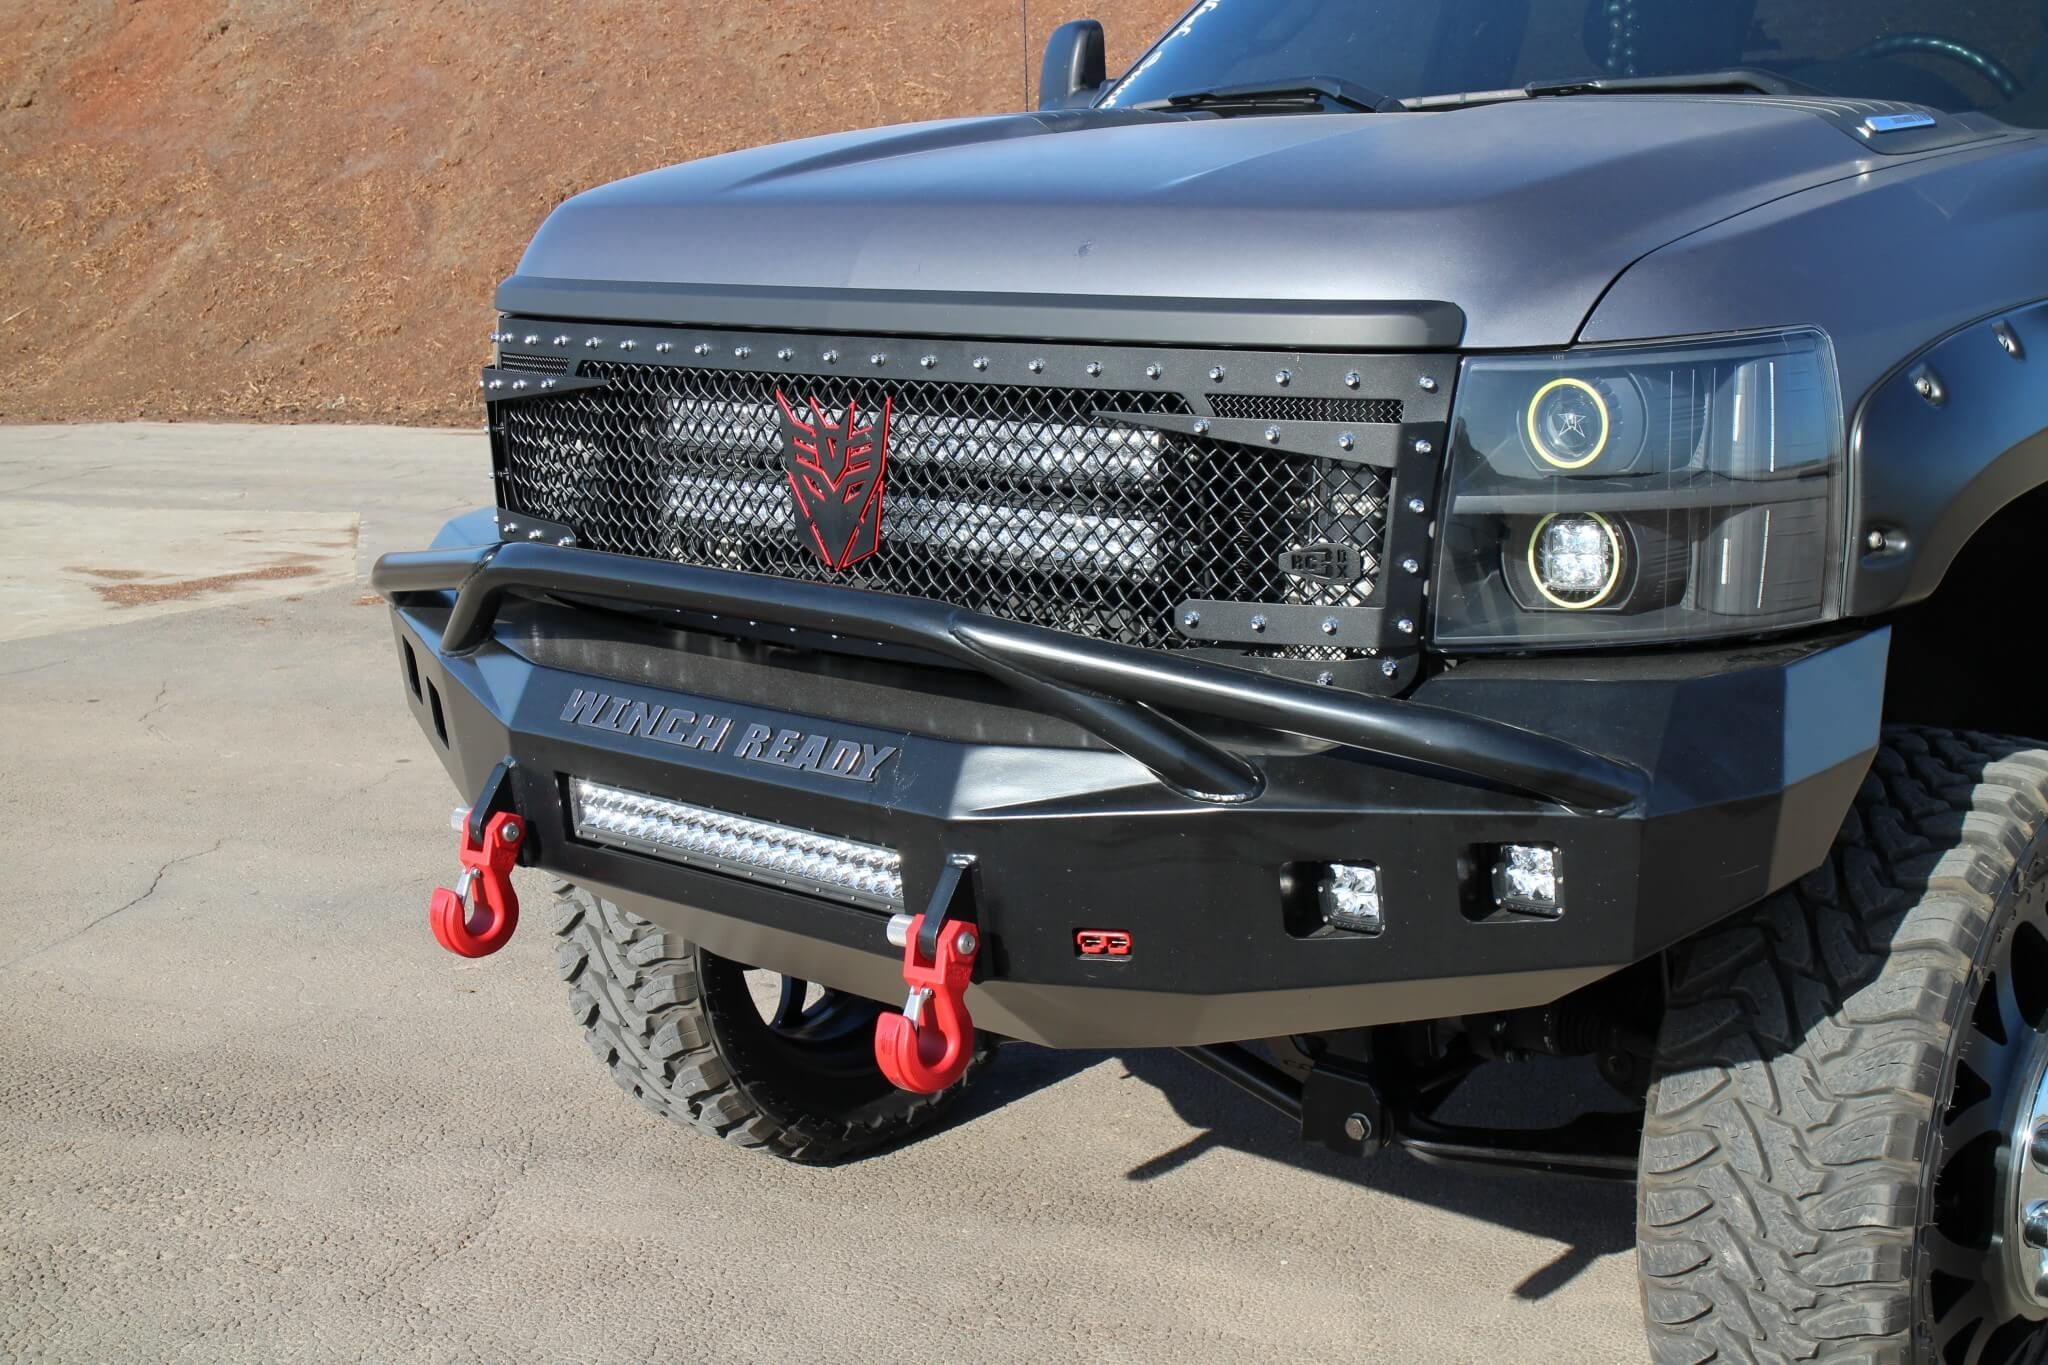 The leading edge was equipped with a Winch Ready prerunner bumper fitted with Monster recovery hooks and a Rigid Industries 20-inch E series LED light bar with four dually LEDs. A Royalty Core RC2 grille is flanked by a pair of Plain an Simple projector/halo HID headlights.